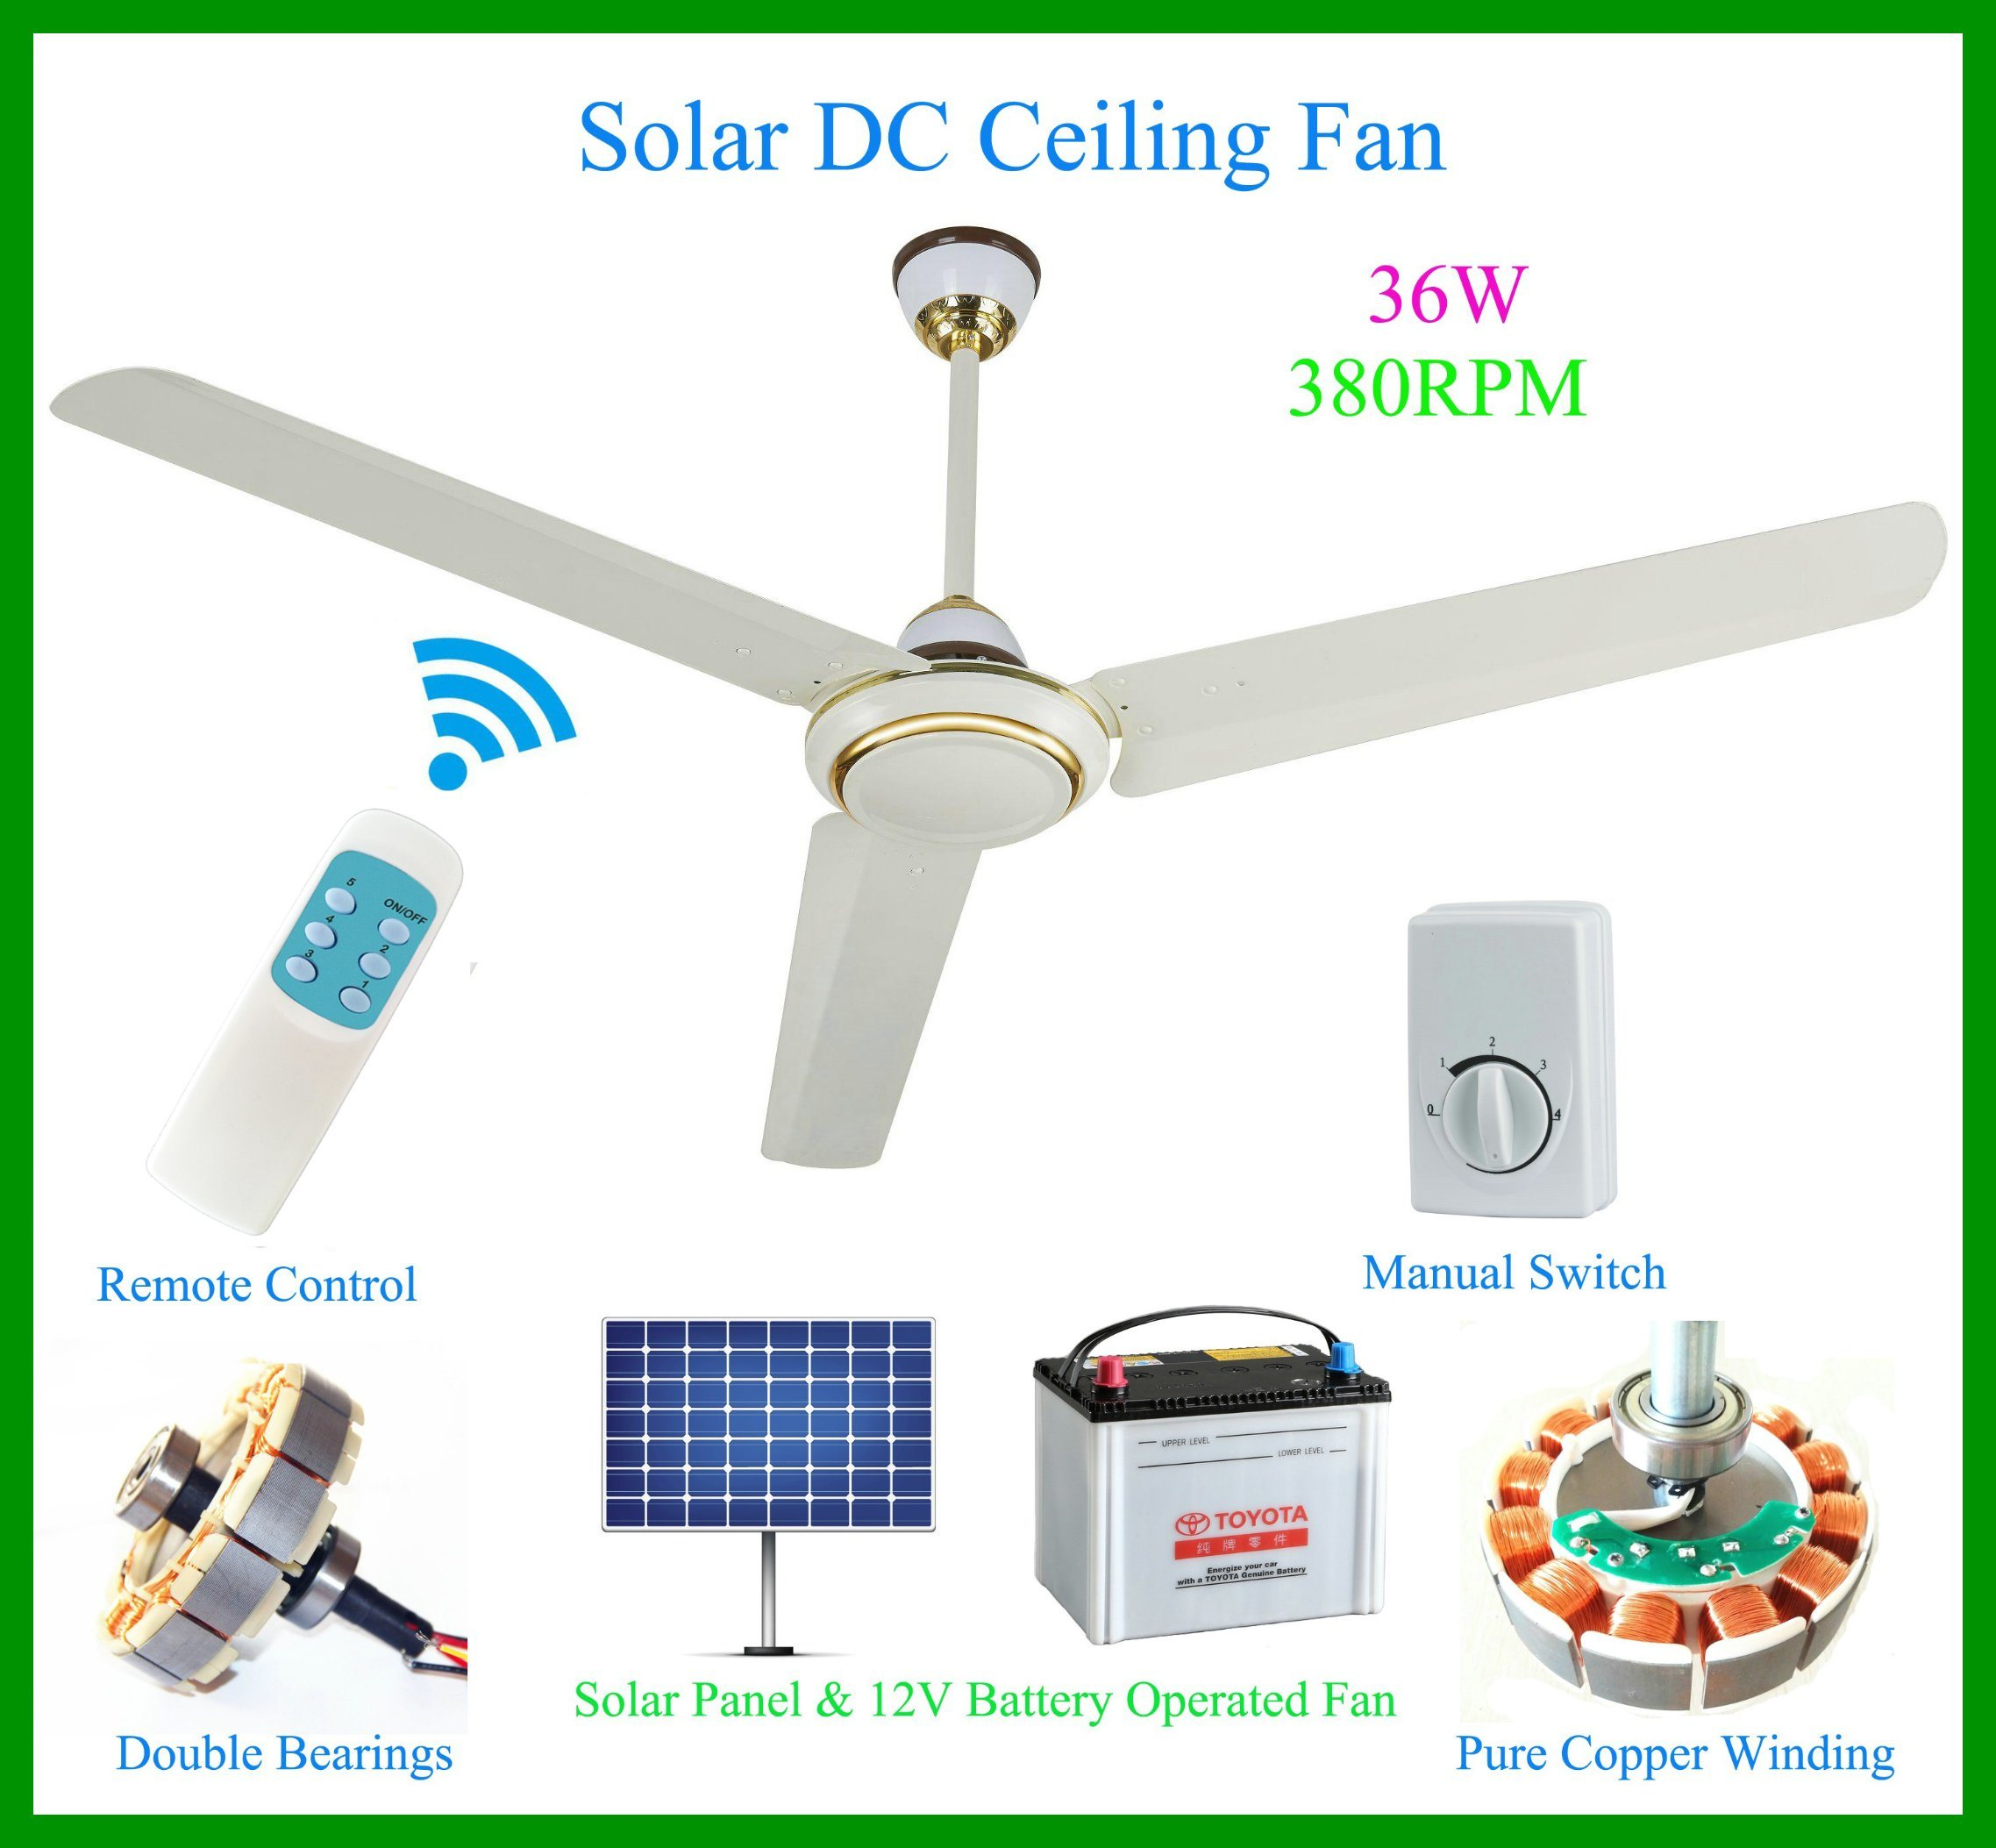 China 380rpm high speed 56 solar dc ceiling fan with remote control china 380rpm high speed 56 solar dc ceiling fan with remote control china dc ceiling fan ceiling fan aloadofball Image collections